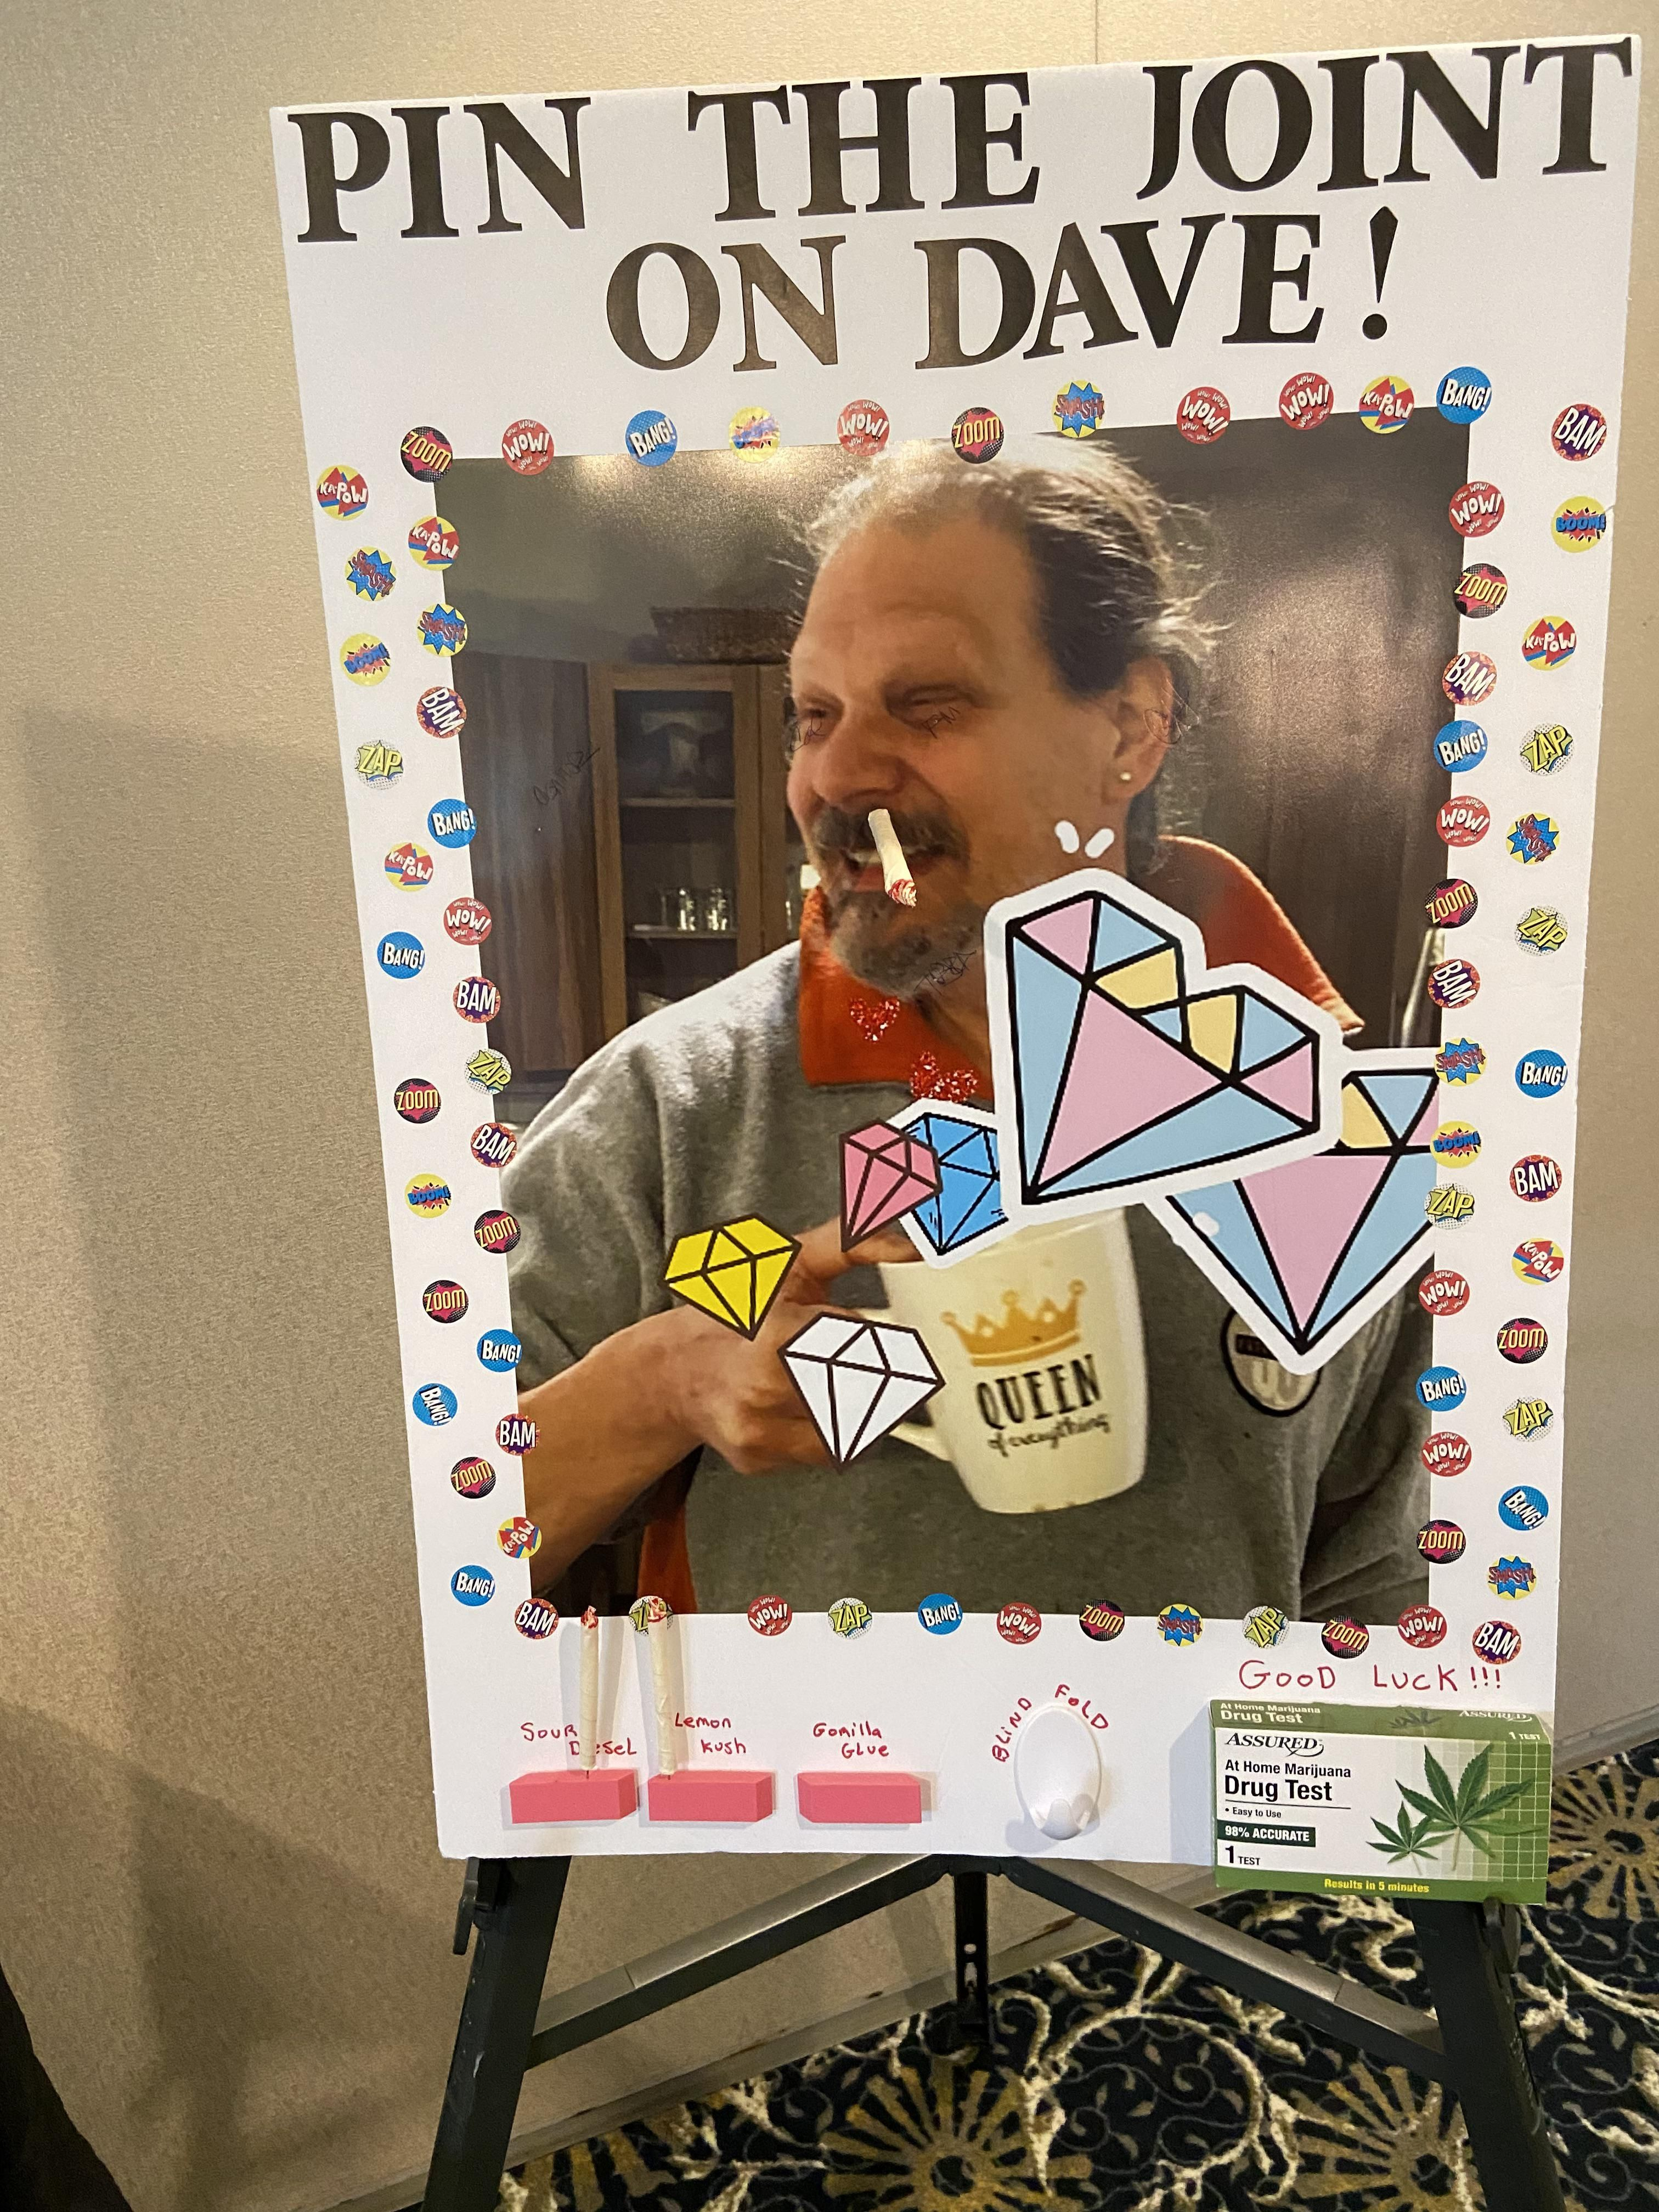 My stoner dad died two weeks ago. After his funeral, we played pin the joint on Dave, complete with his favorite strands of weed.